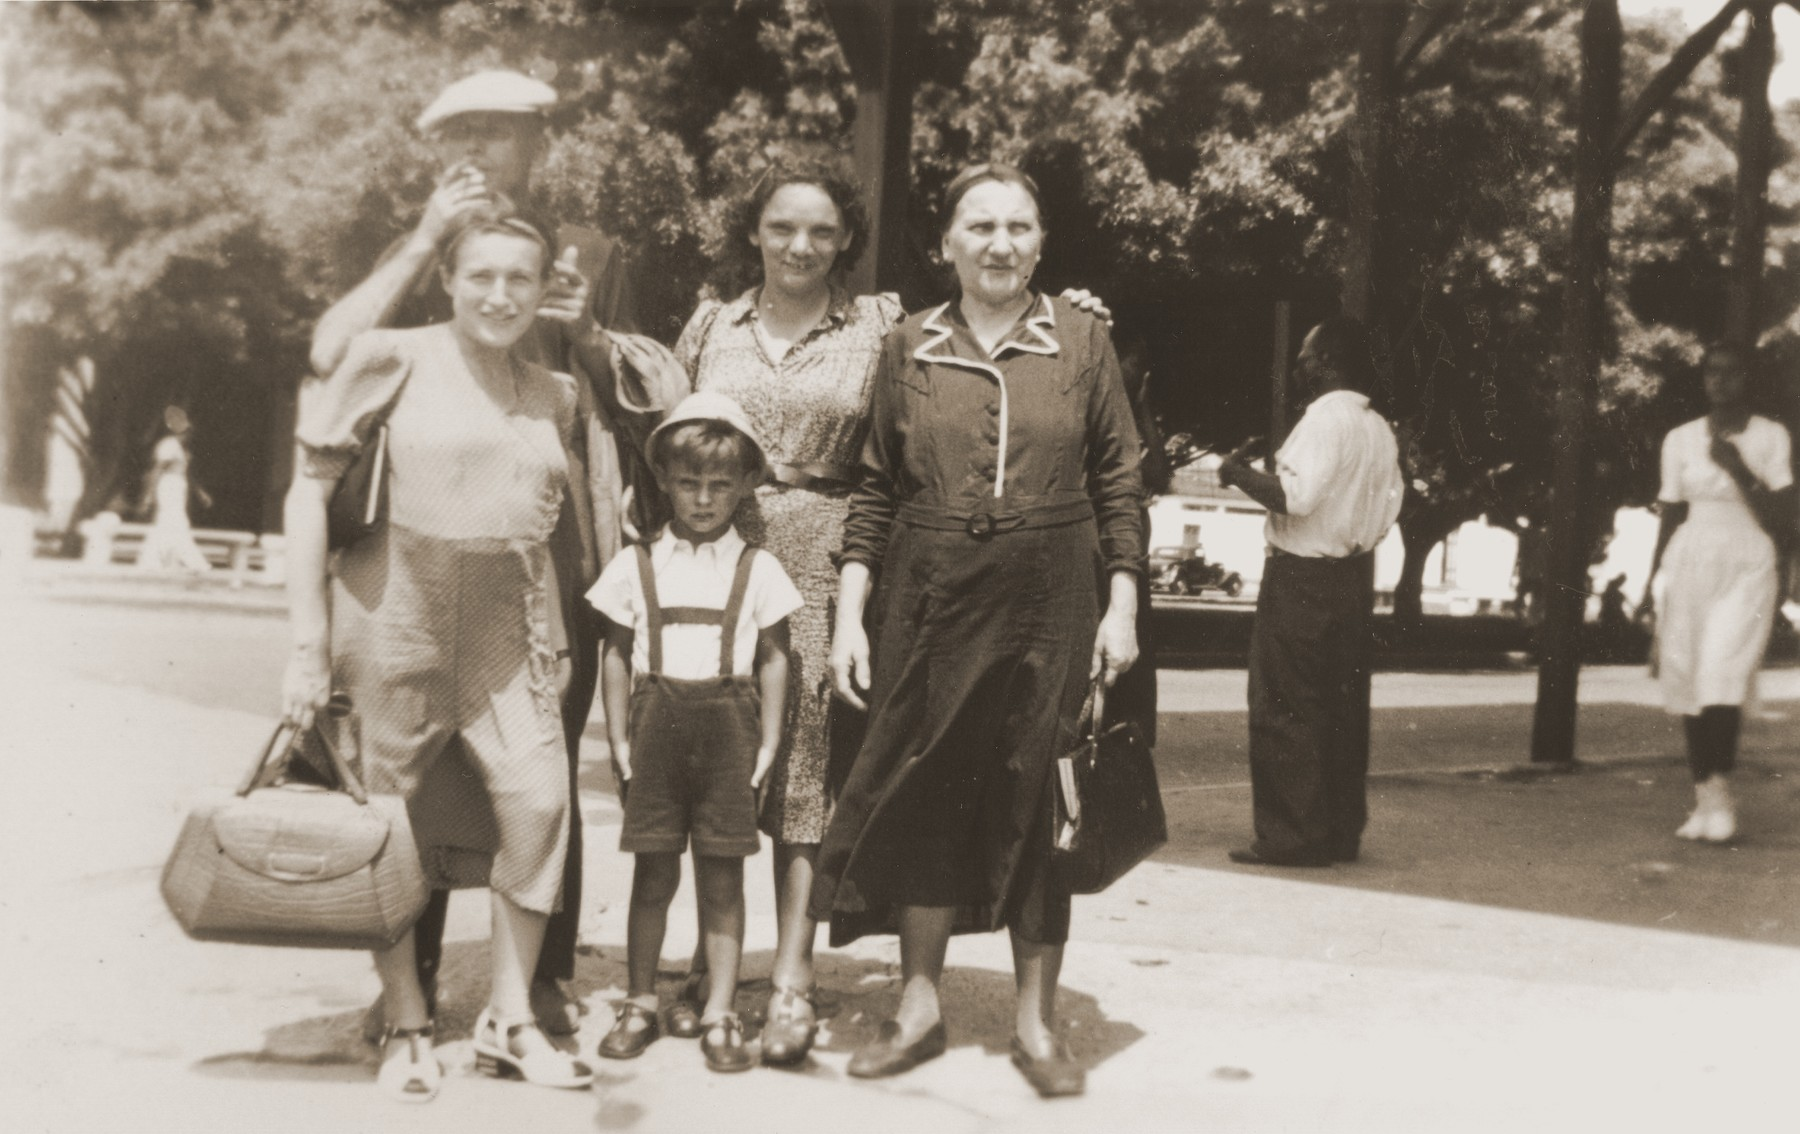 Jewish refugees sailing aboard the SS Virgilio enjoy a  one-day  stopover in Cristobal, Panama on their journey from Italy to Chile.  From Chile they traveled overland to their new homes in La Paz, Bolivia.    Among those pictured are Lina Spitzer (right) and Rosie Spitzer (left).